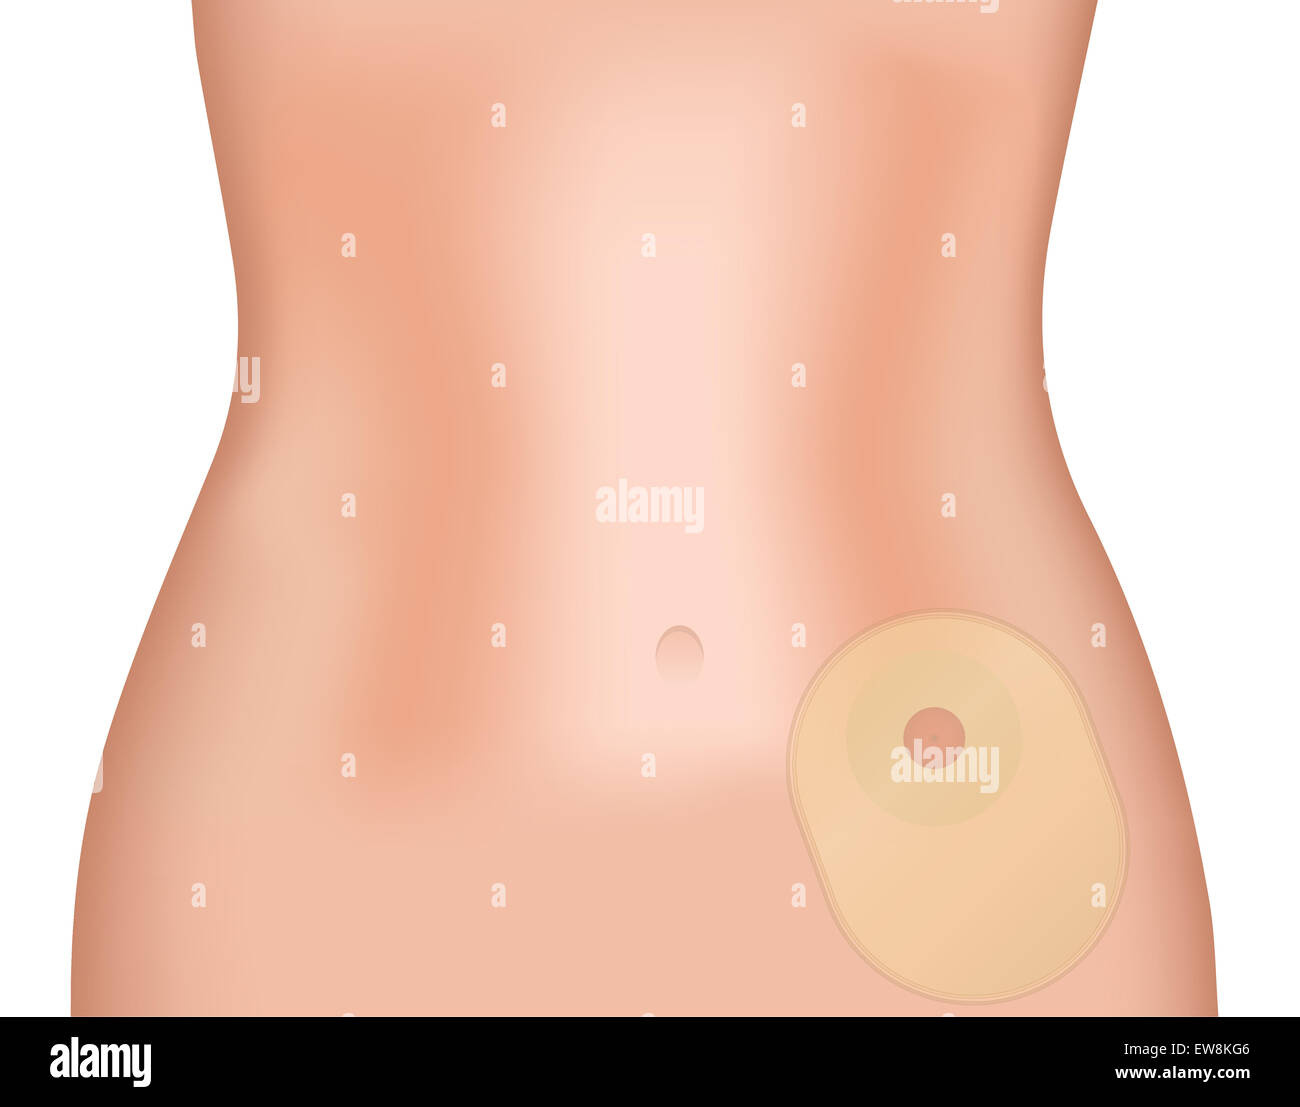 Person Wearing Colostomy Bag - Stock Image